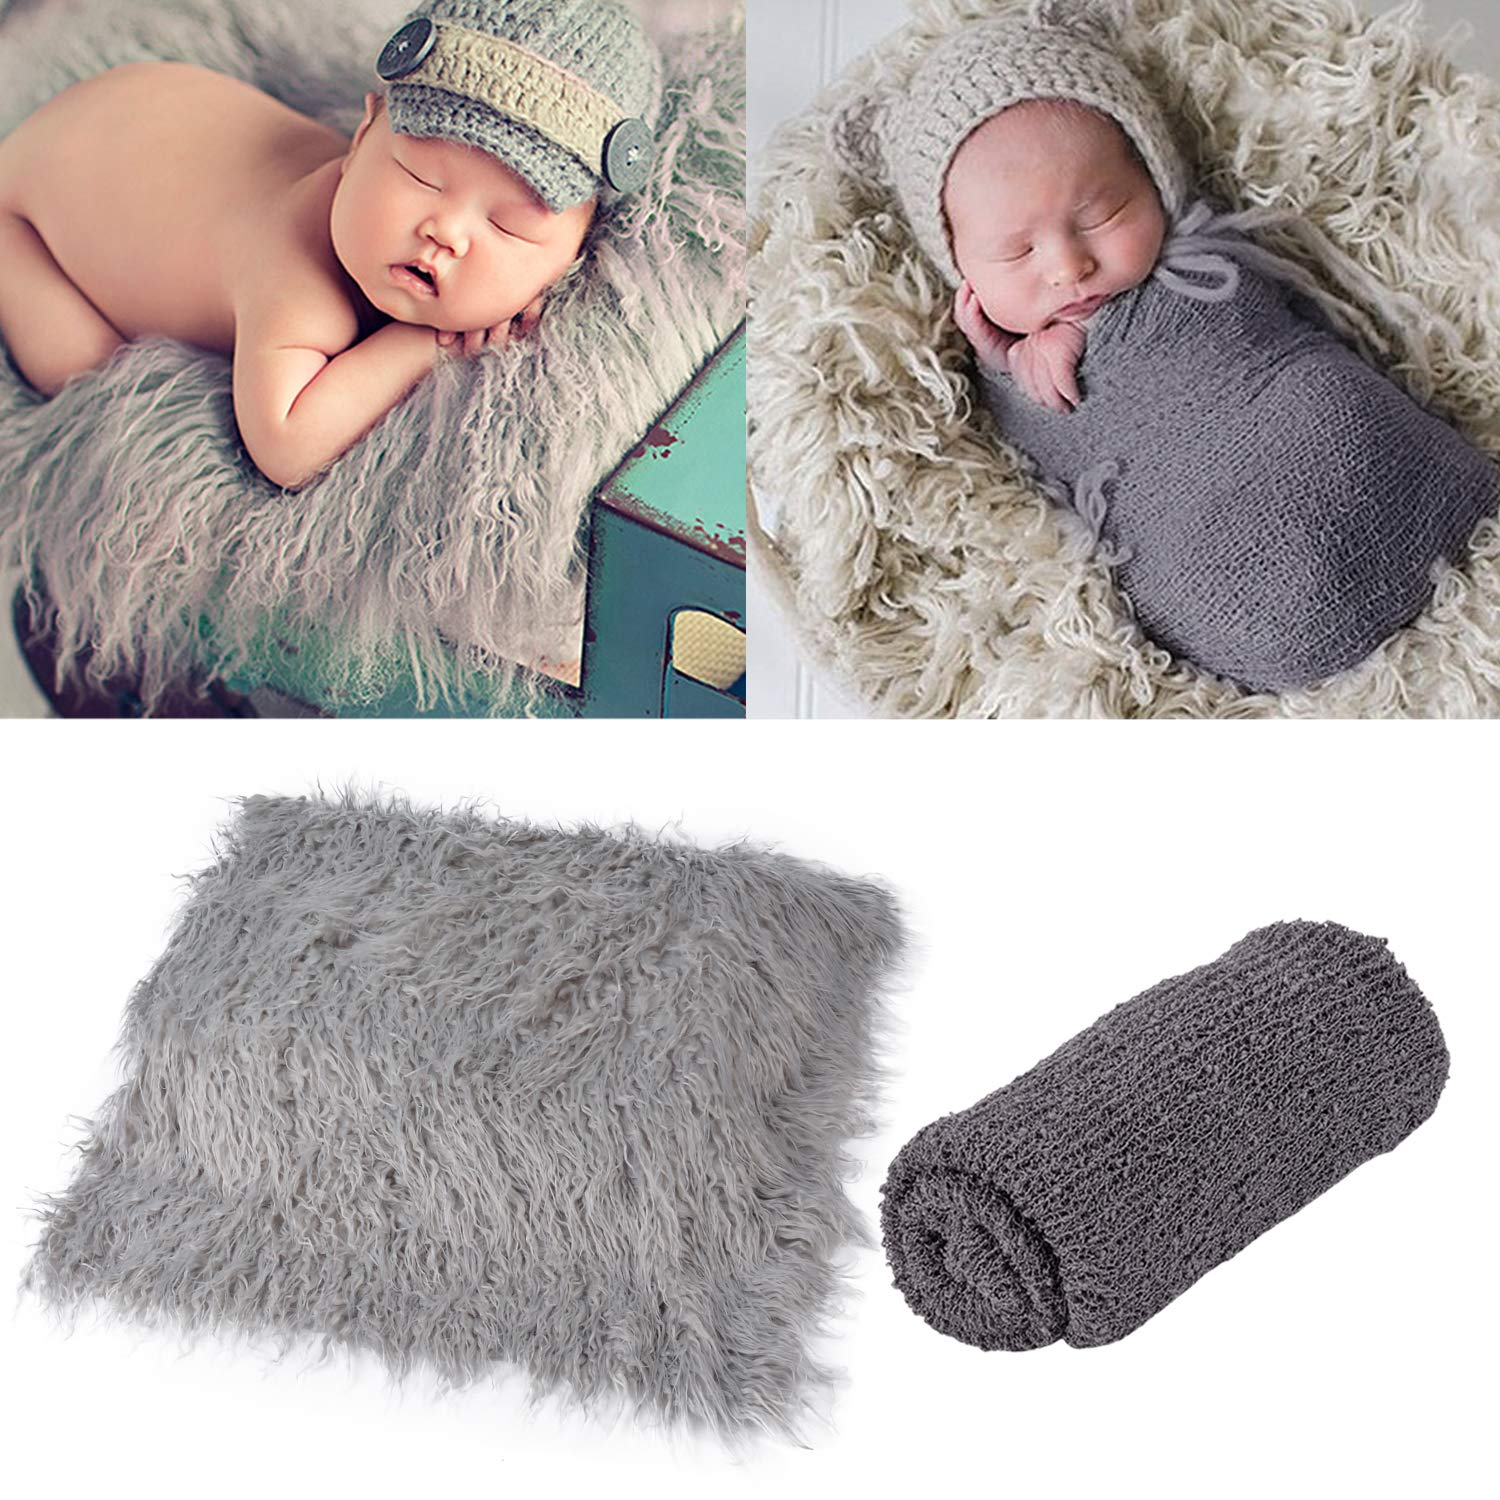 Outgeek Newborn Baby Photography Props Photo Blanket Long Hair Photography  Wrap Shaggy Area Rug Baby Photo Prop Grey and Dark Grey